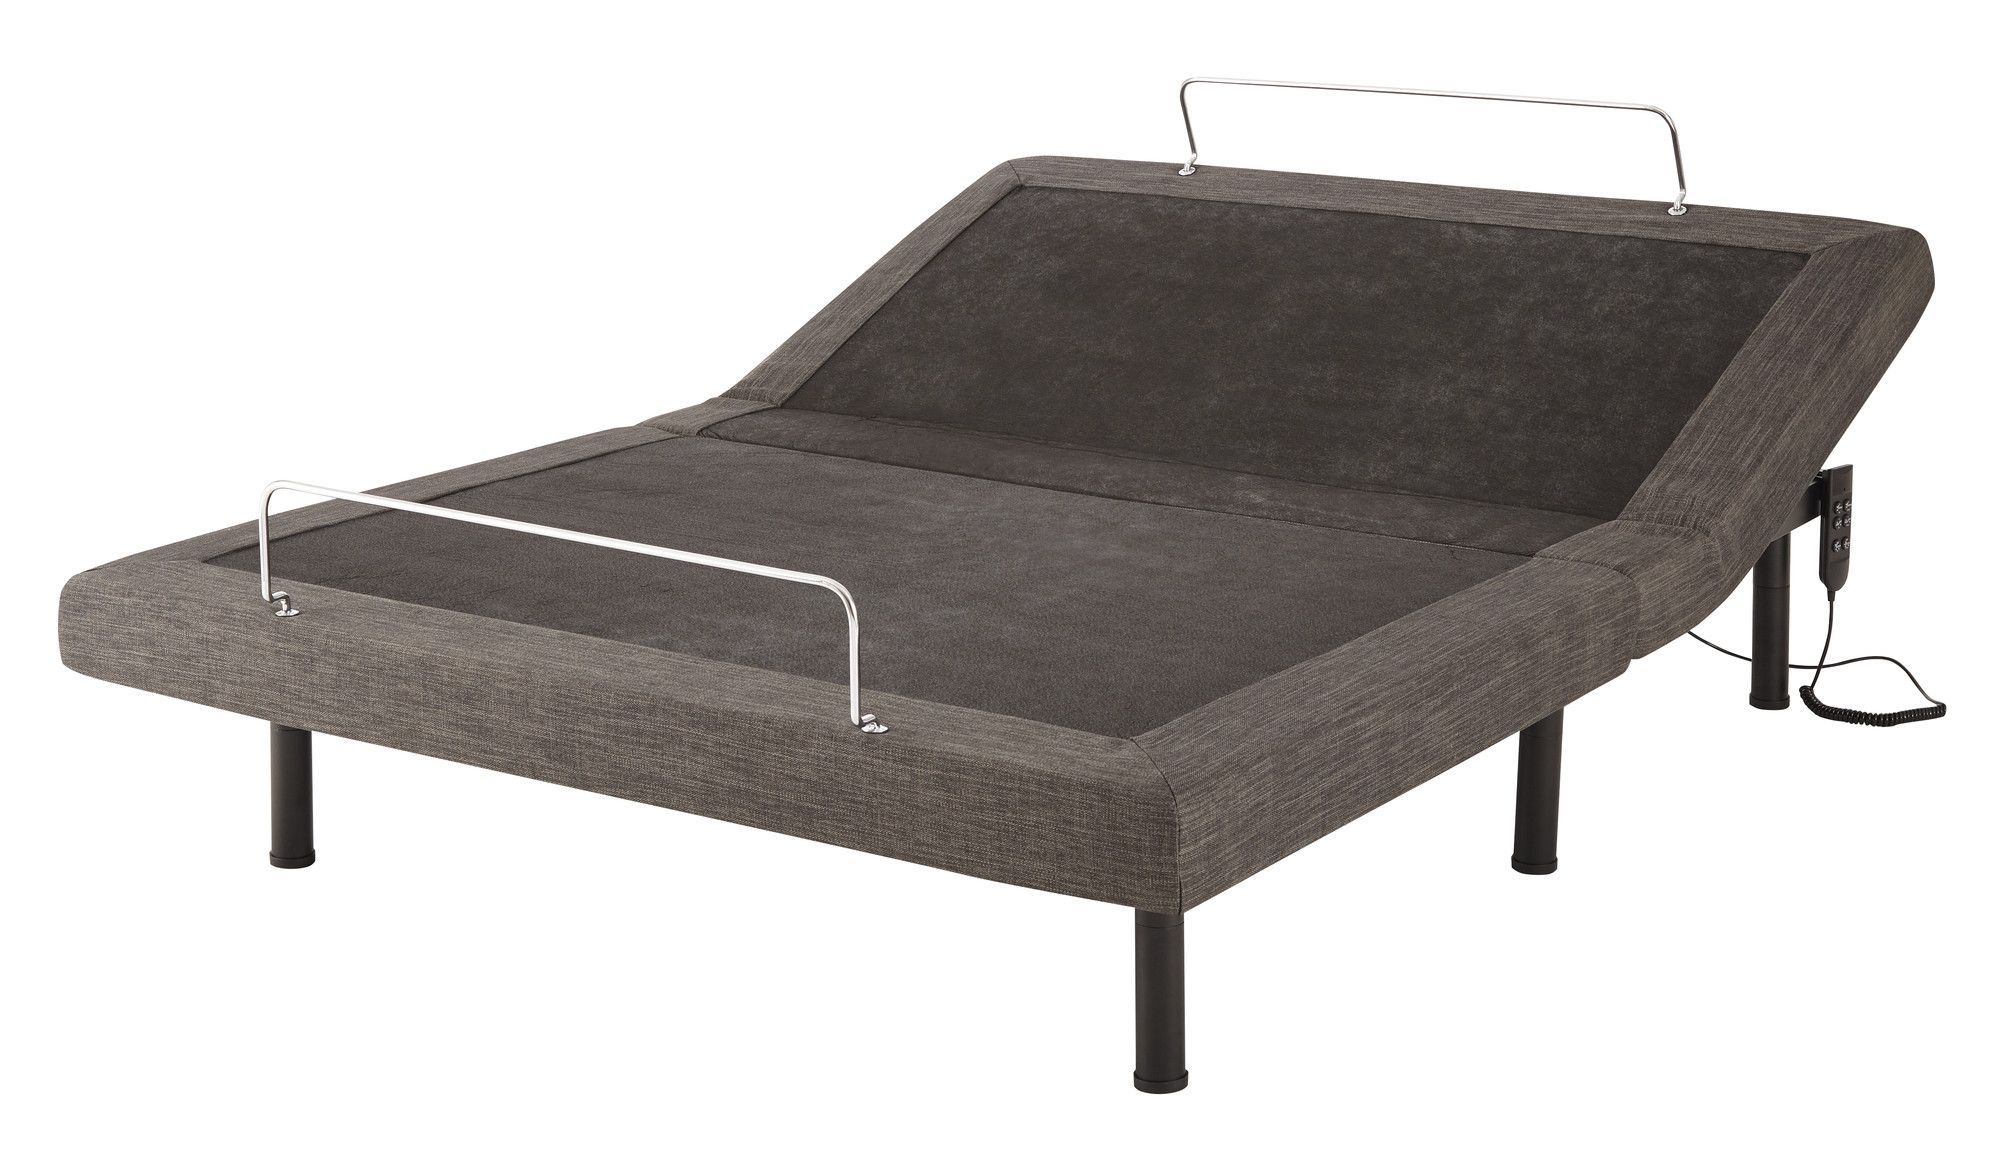 power adjustable bed base with remote control